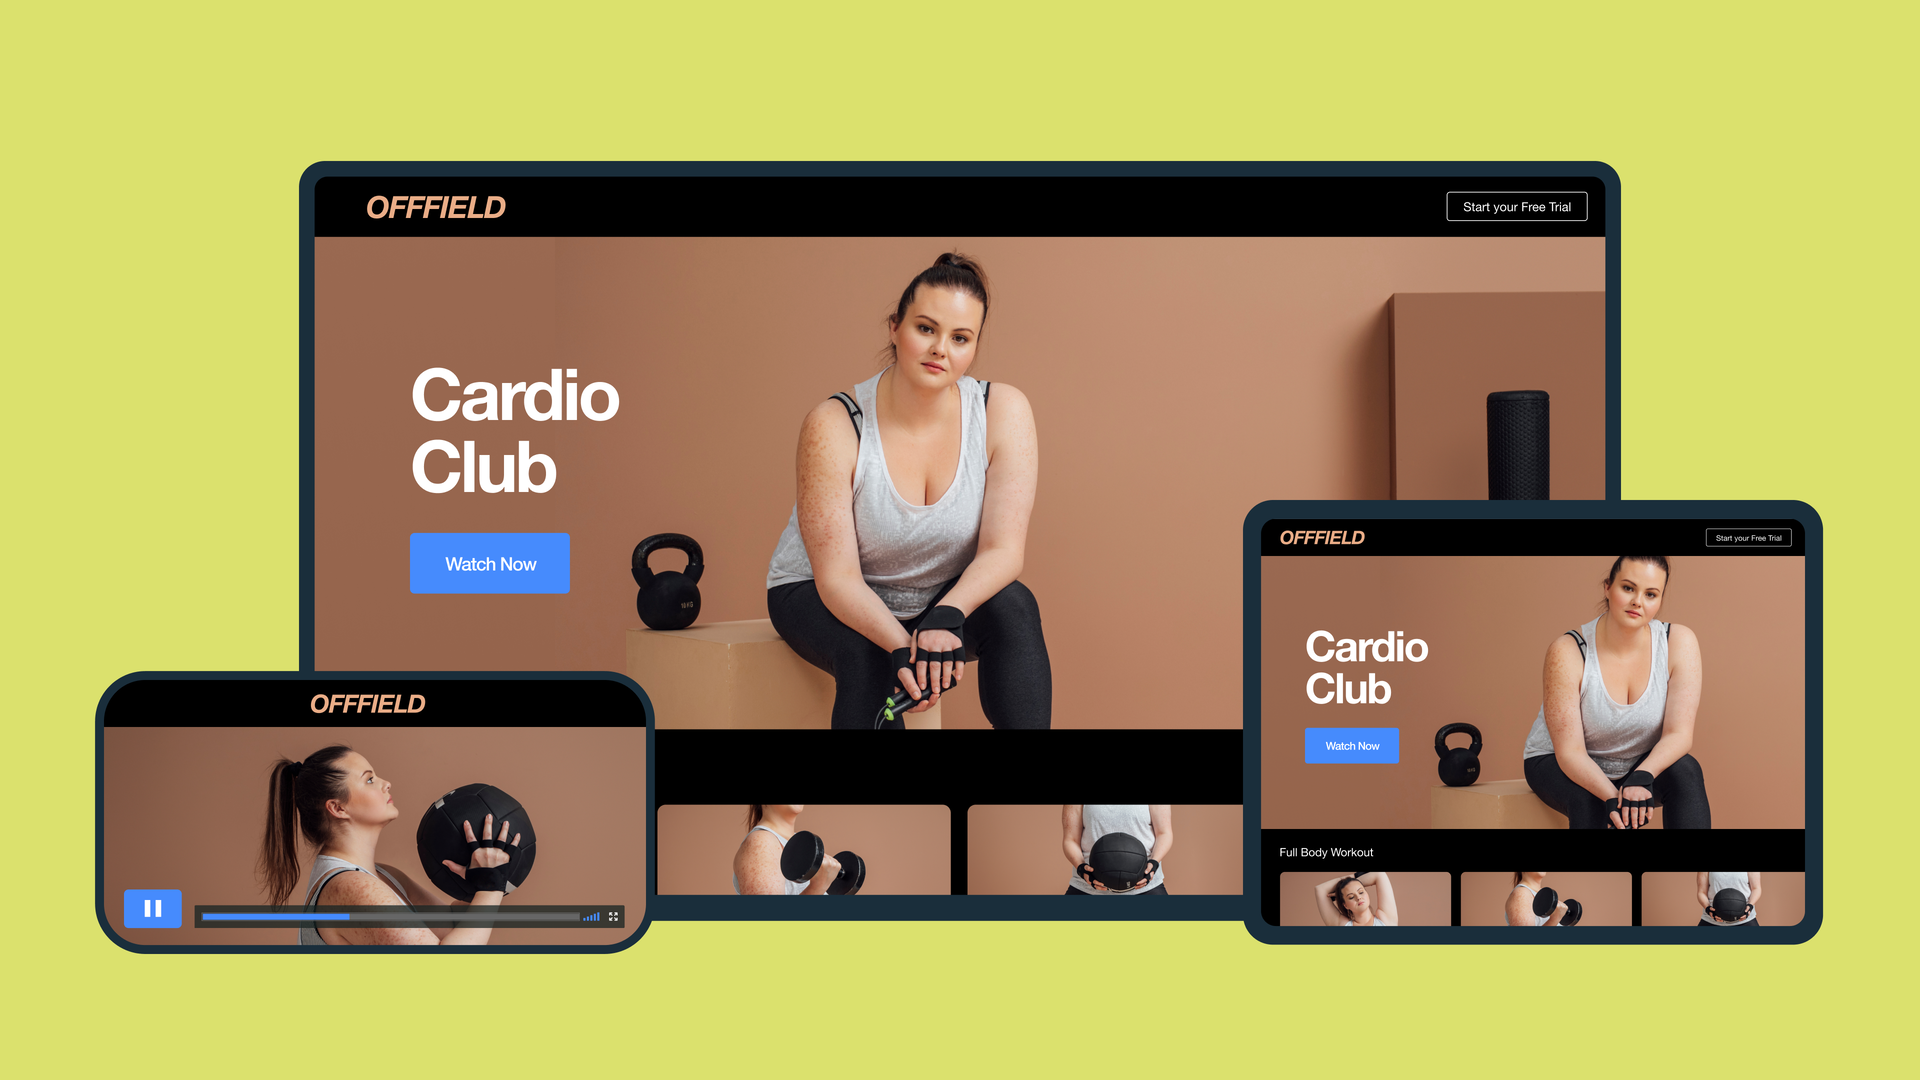 Online paid fitness app on desktop, phone, and tablet.